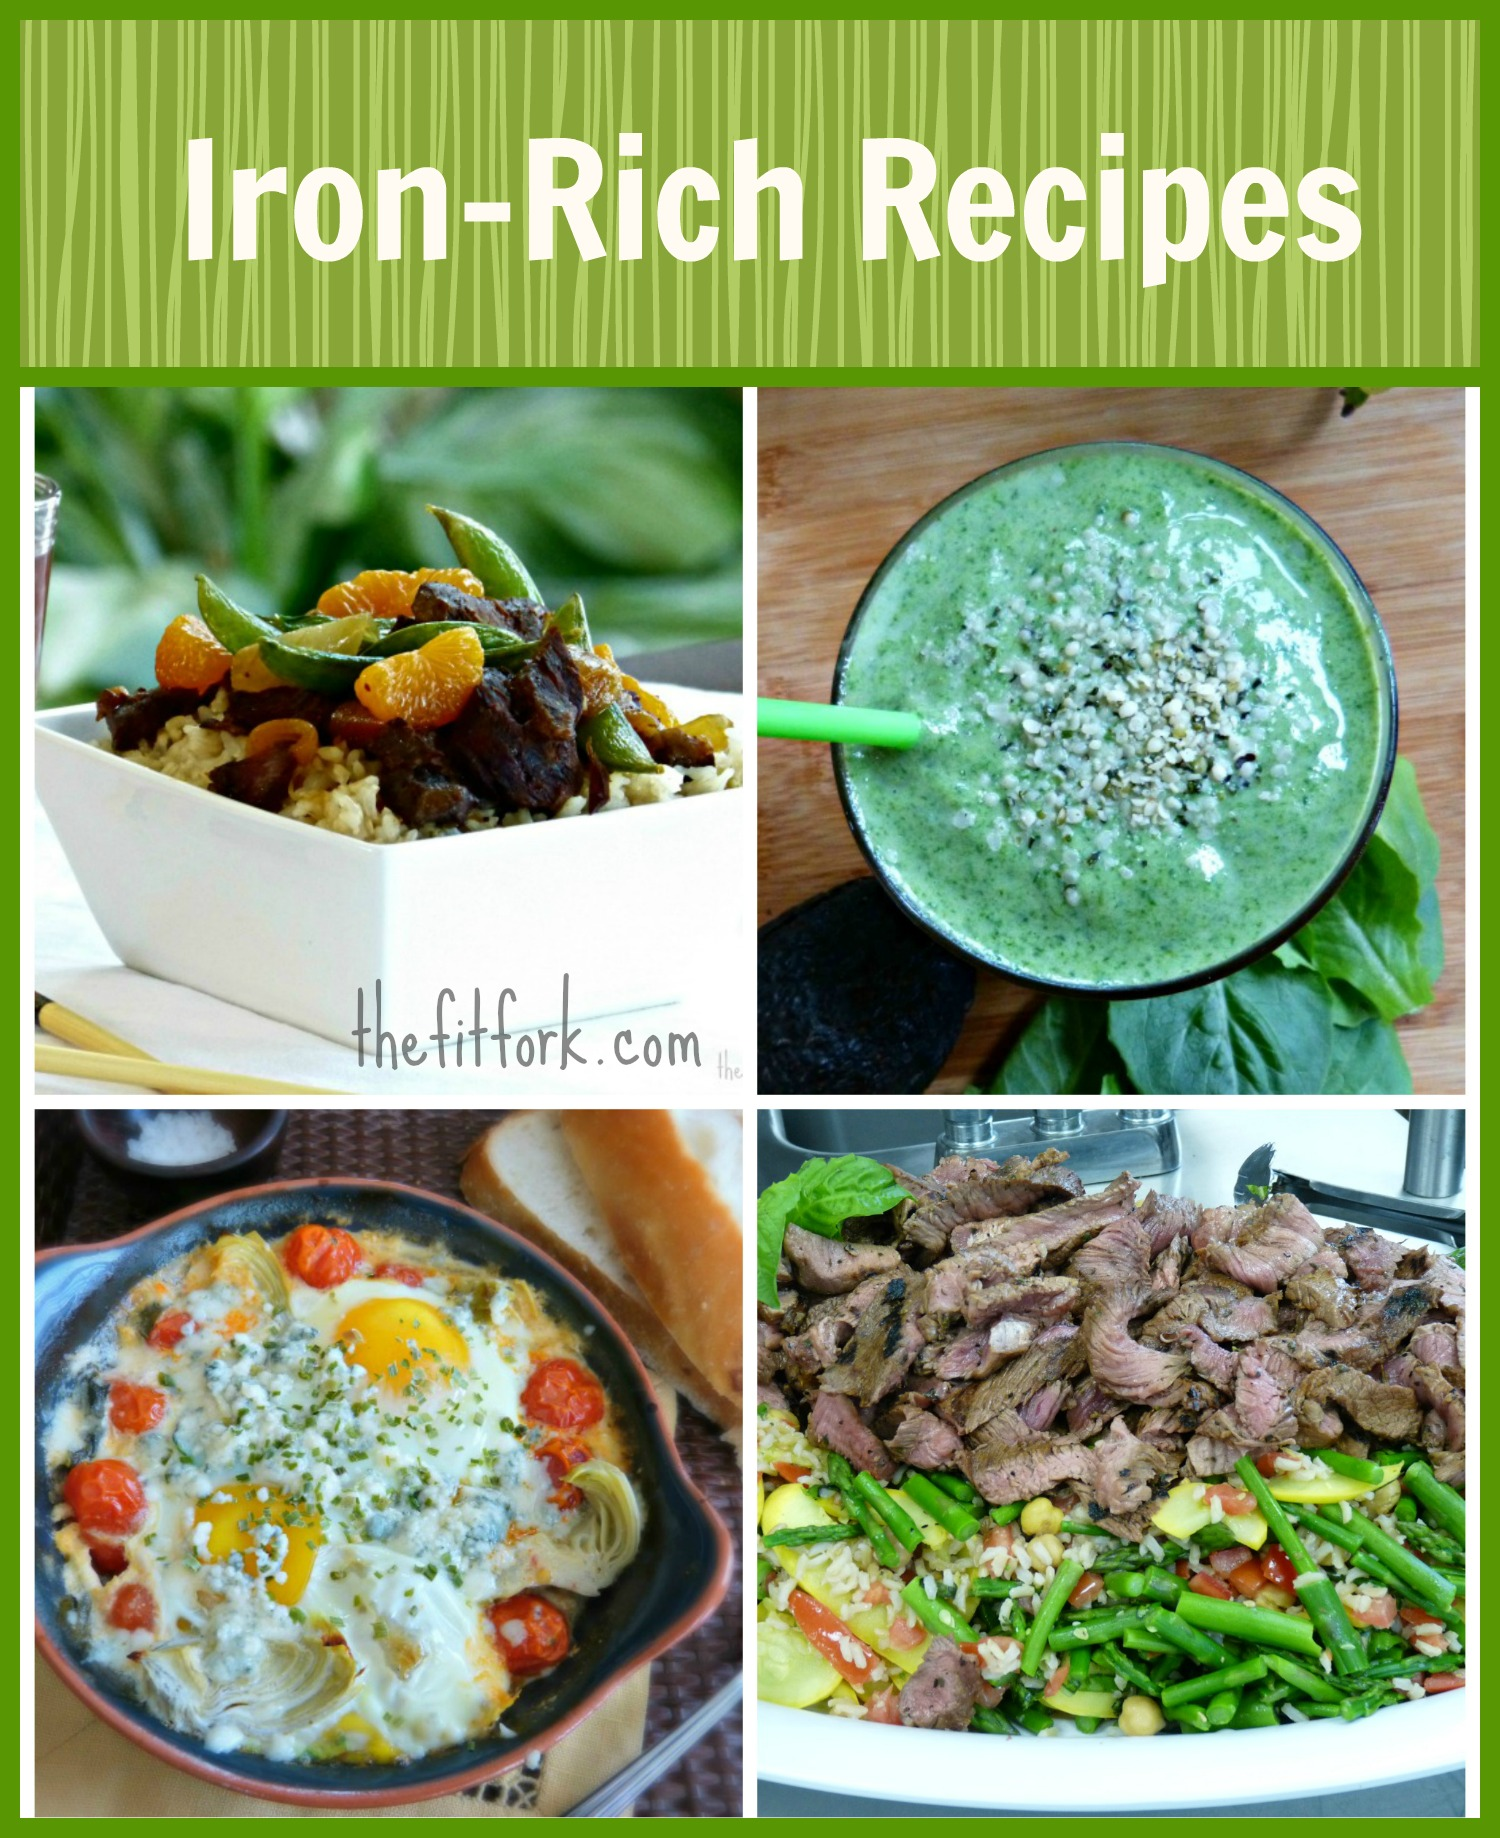 iron rich recipes thefitfork